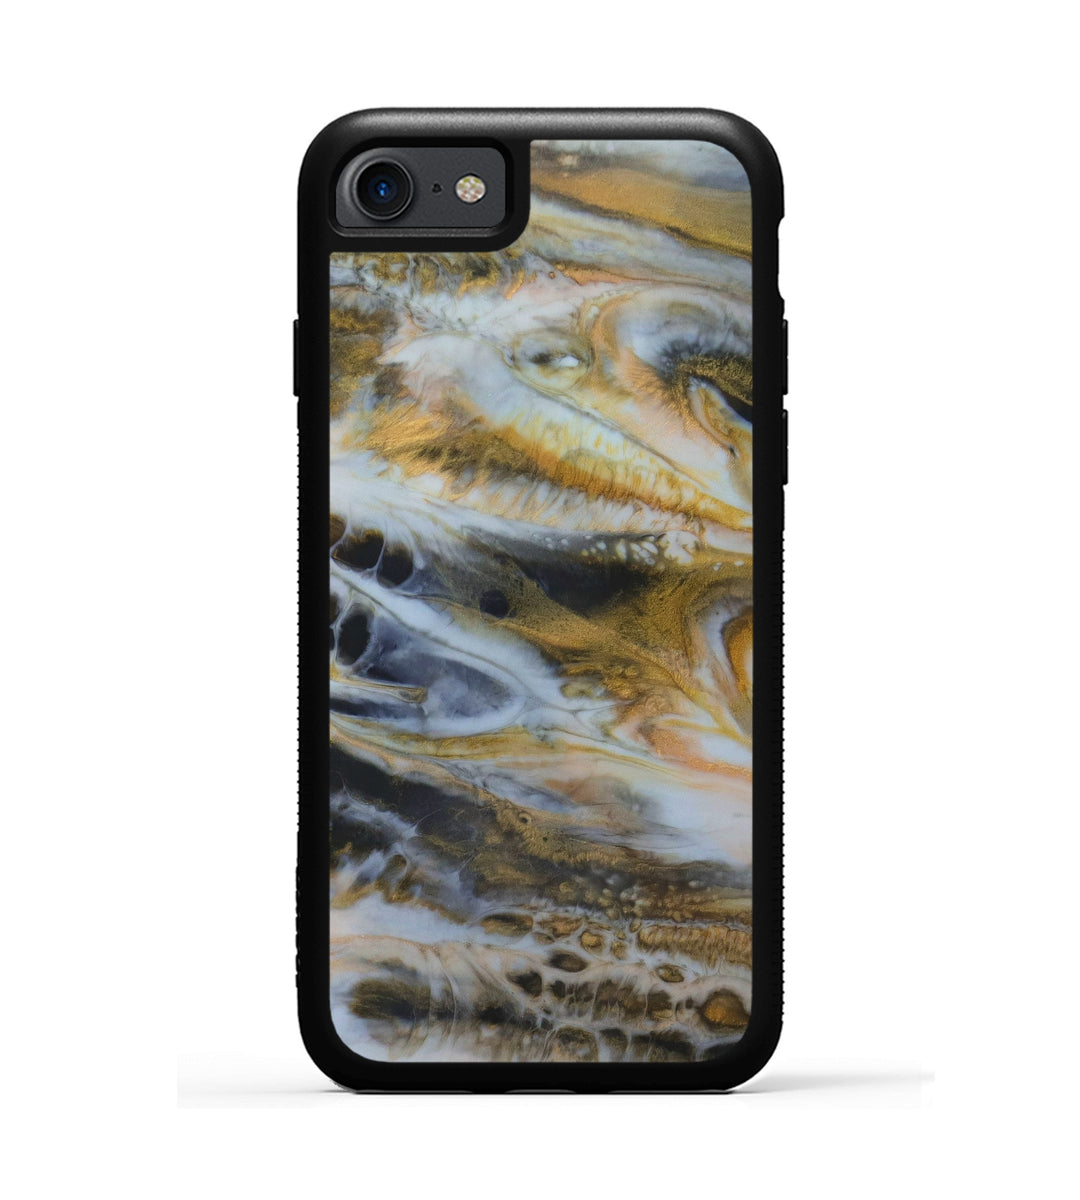 iPhone 7 ResinArt Phone Case - Cammi (Black & White, 347539)